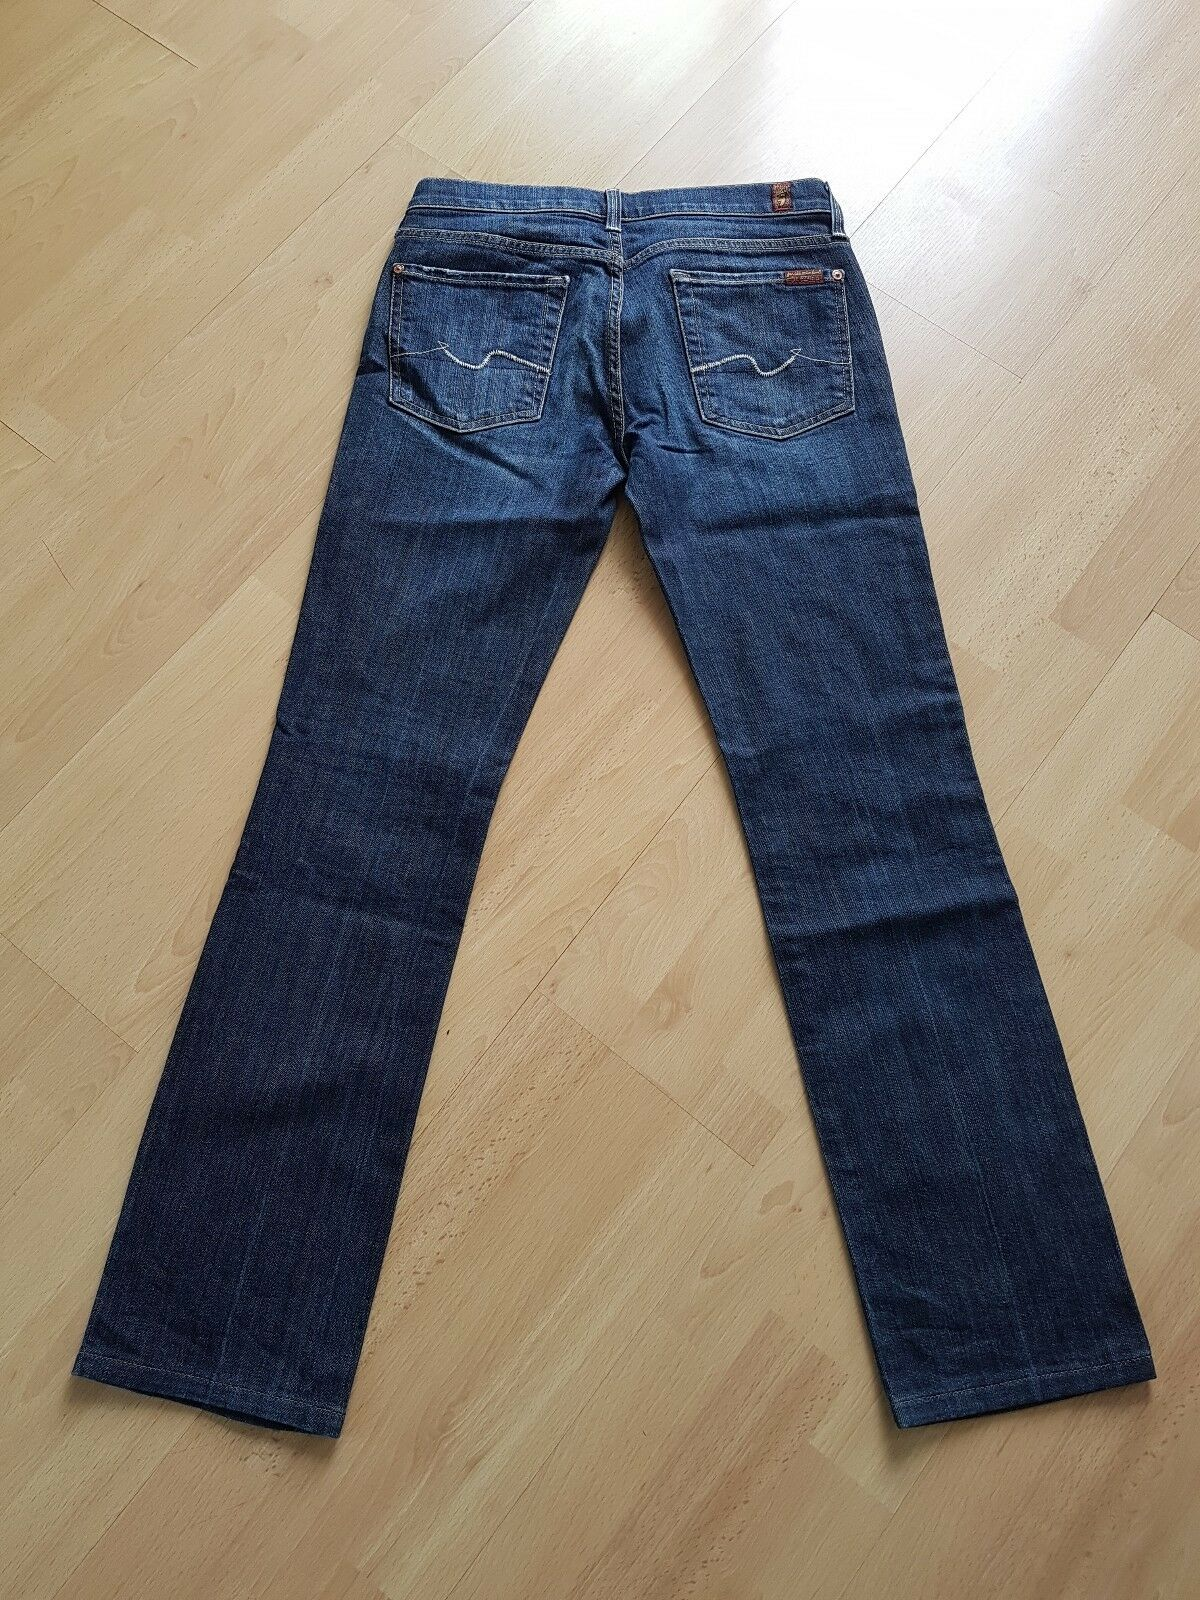 7 for for for all mankind jeans in 27 2ac76c